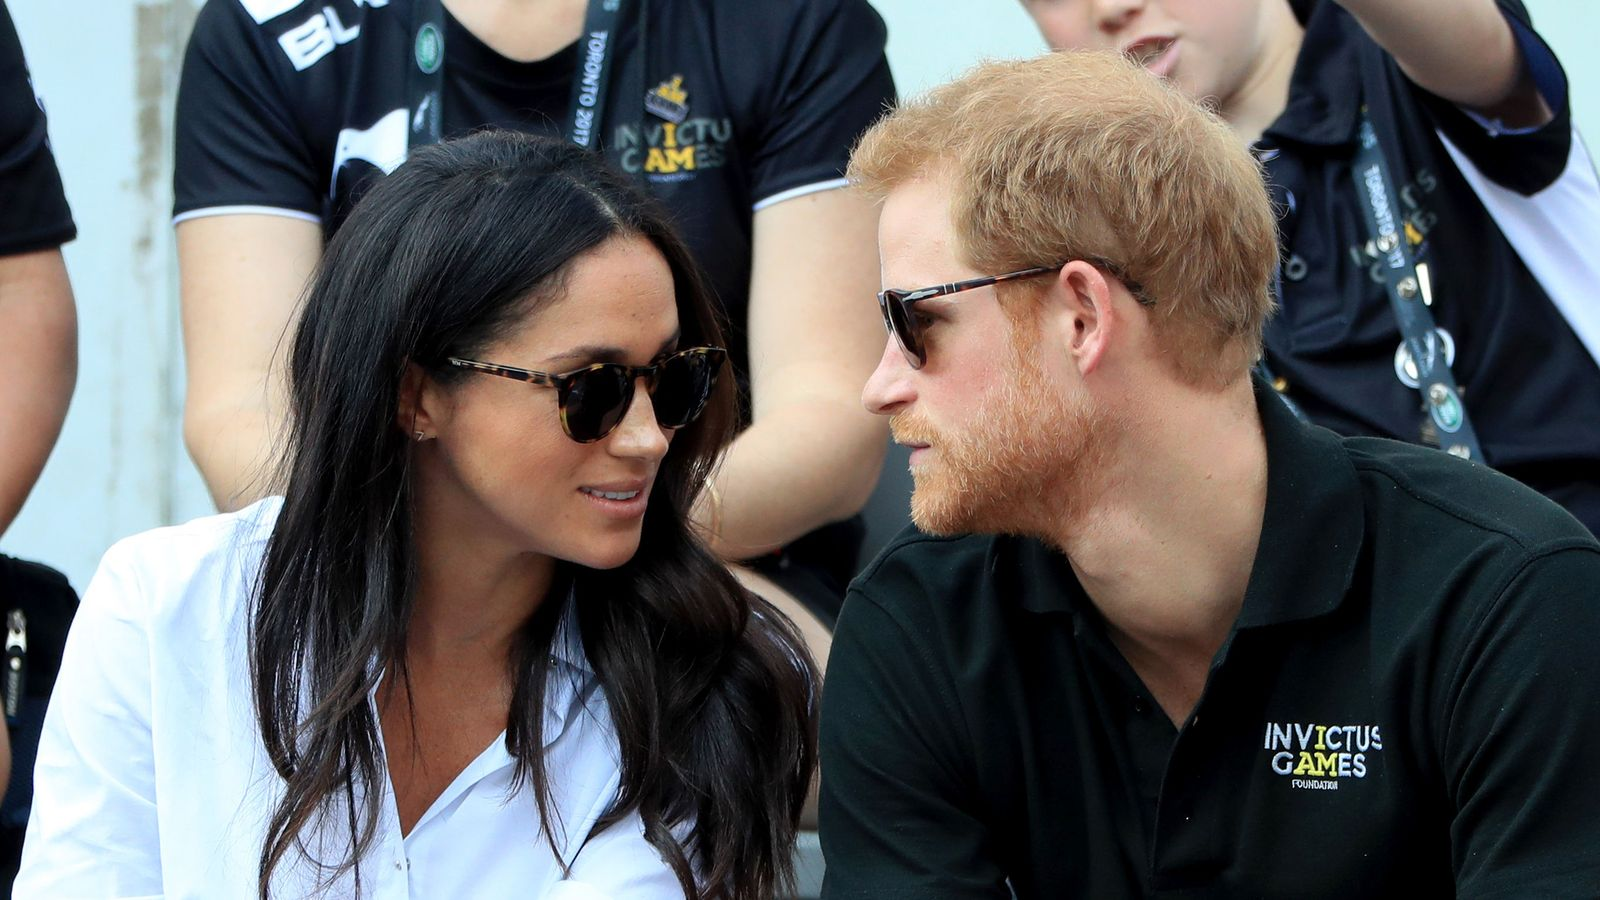 The look of love? Prince Harry and Meghan Markle's first ...